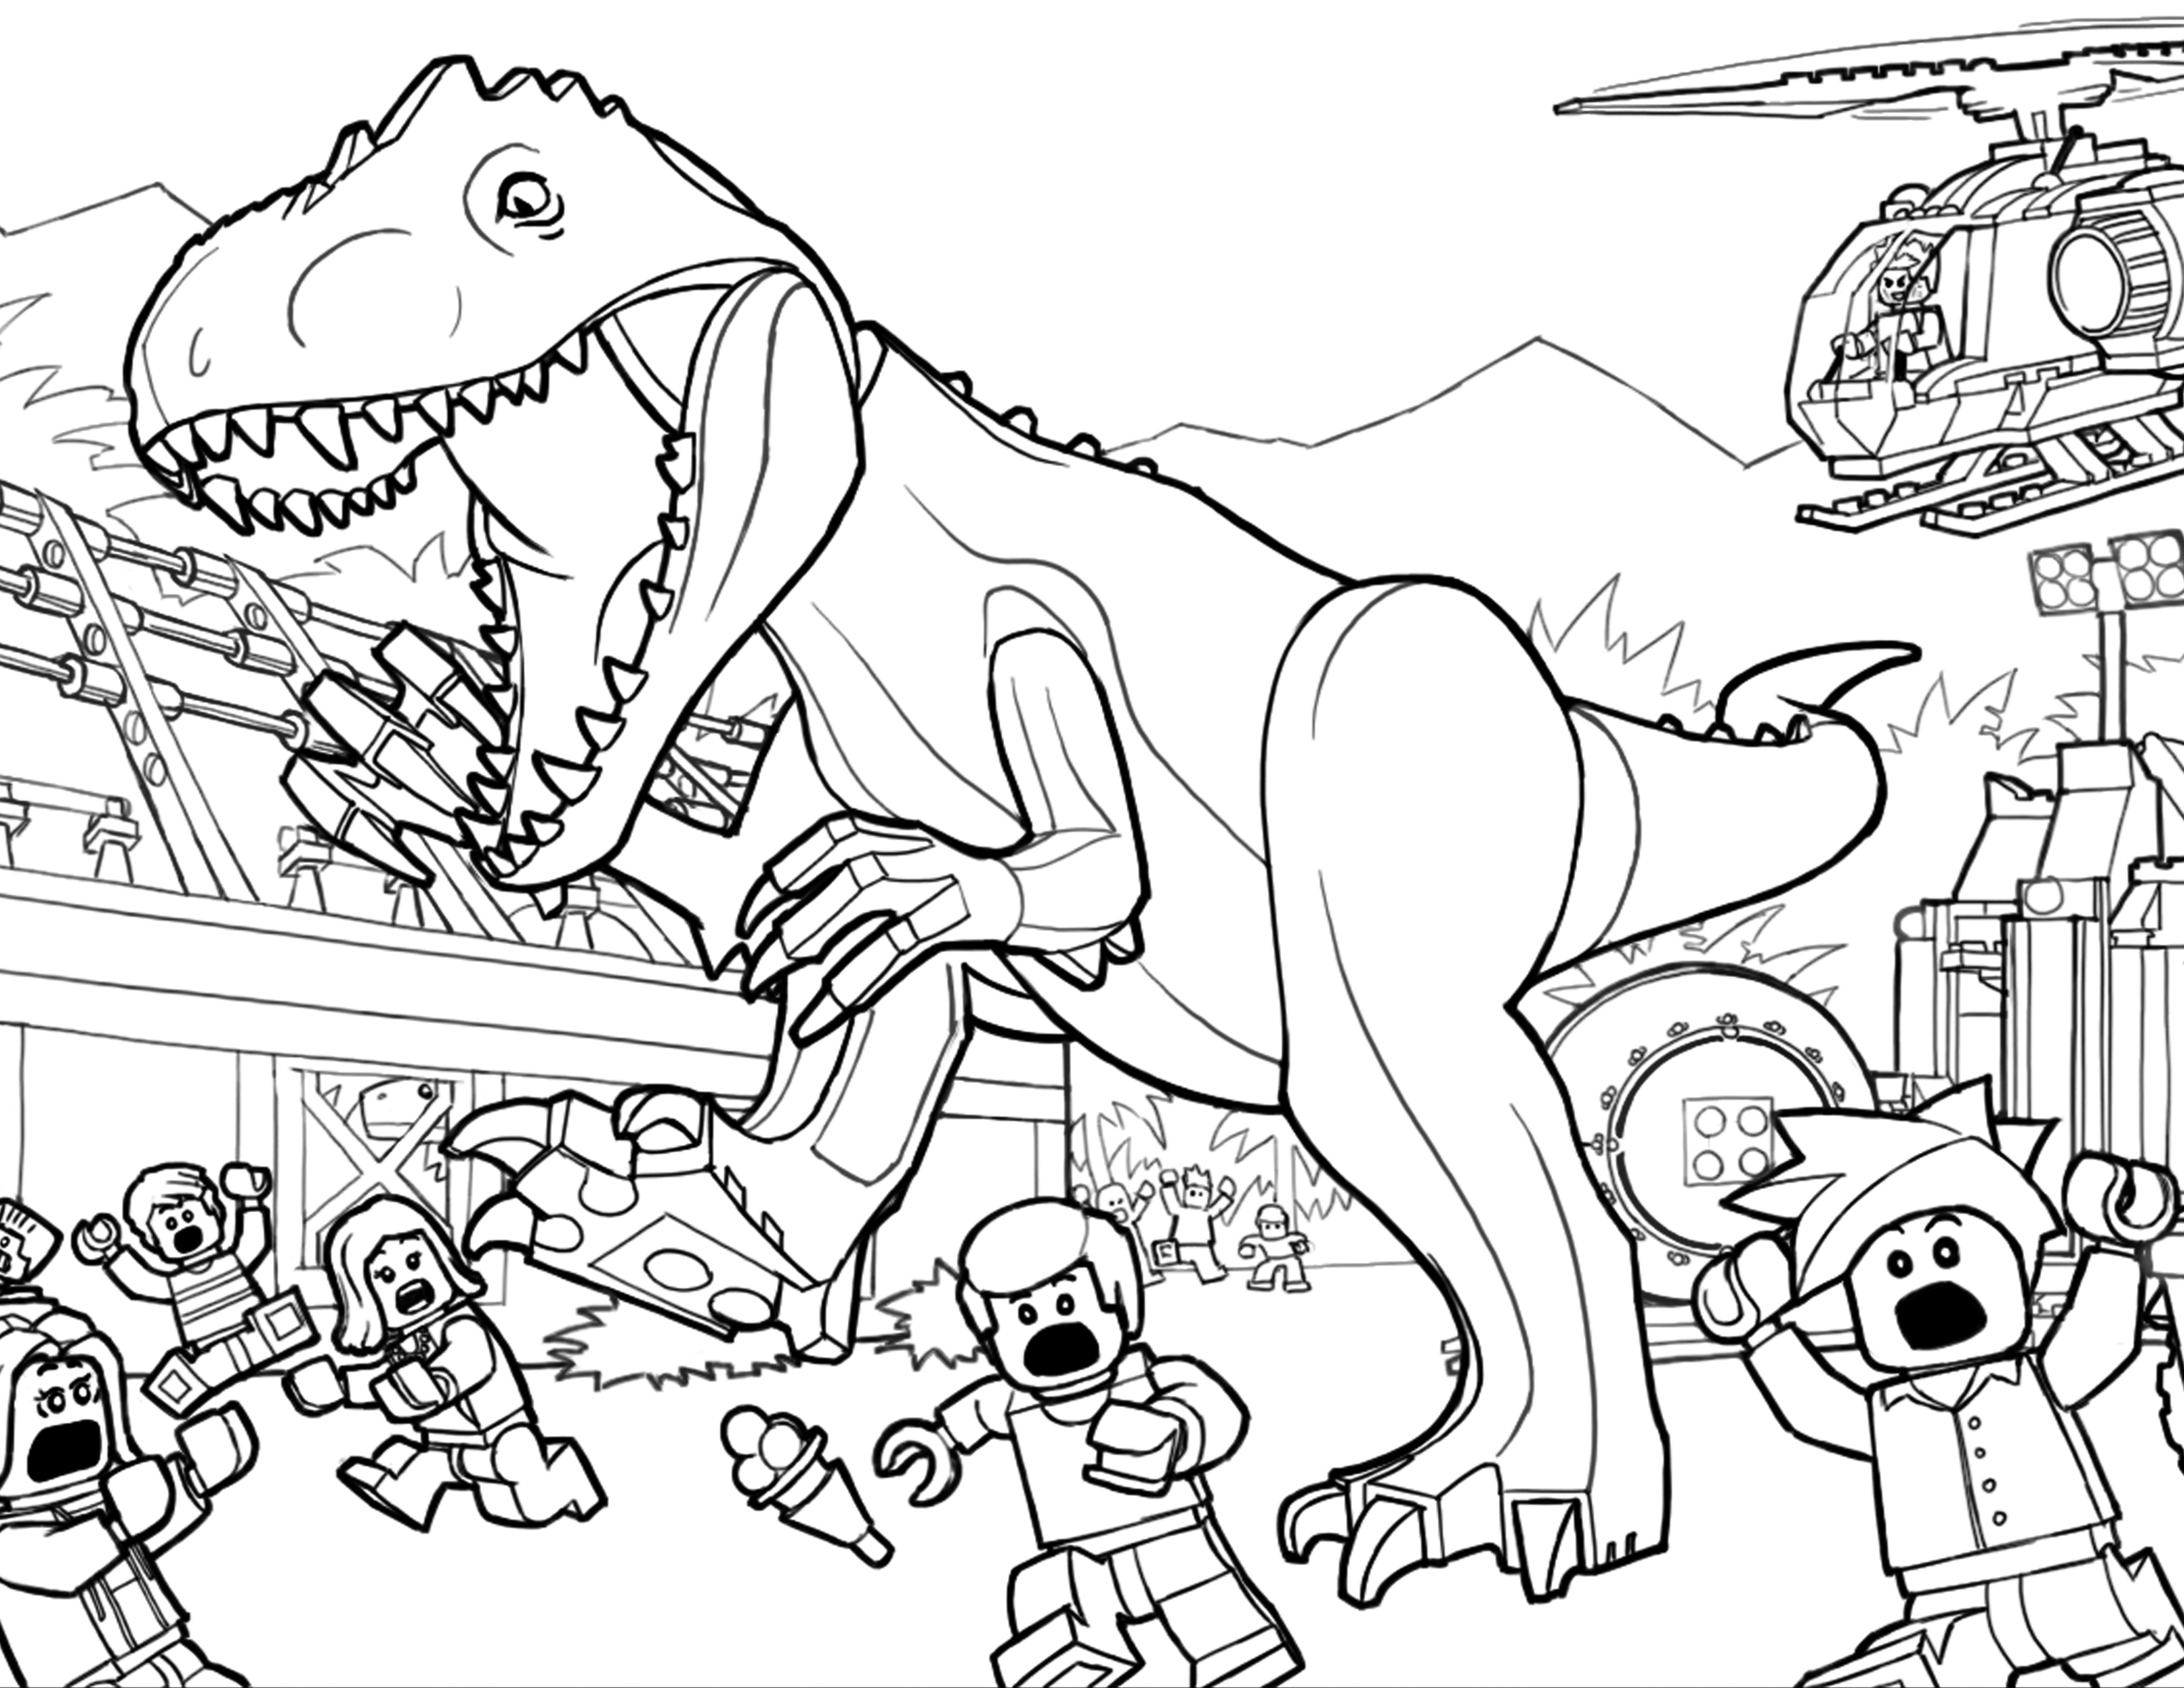 Trex Coloring Pages Best Coloring Pages For Kids